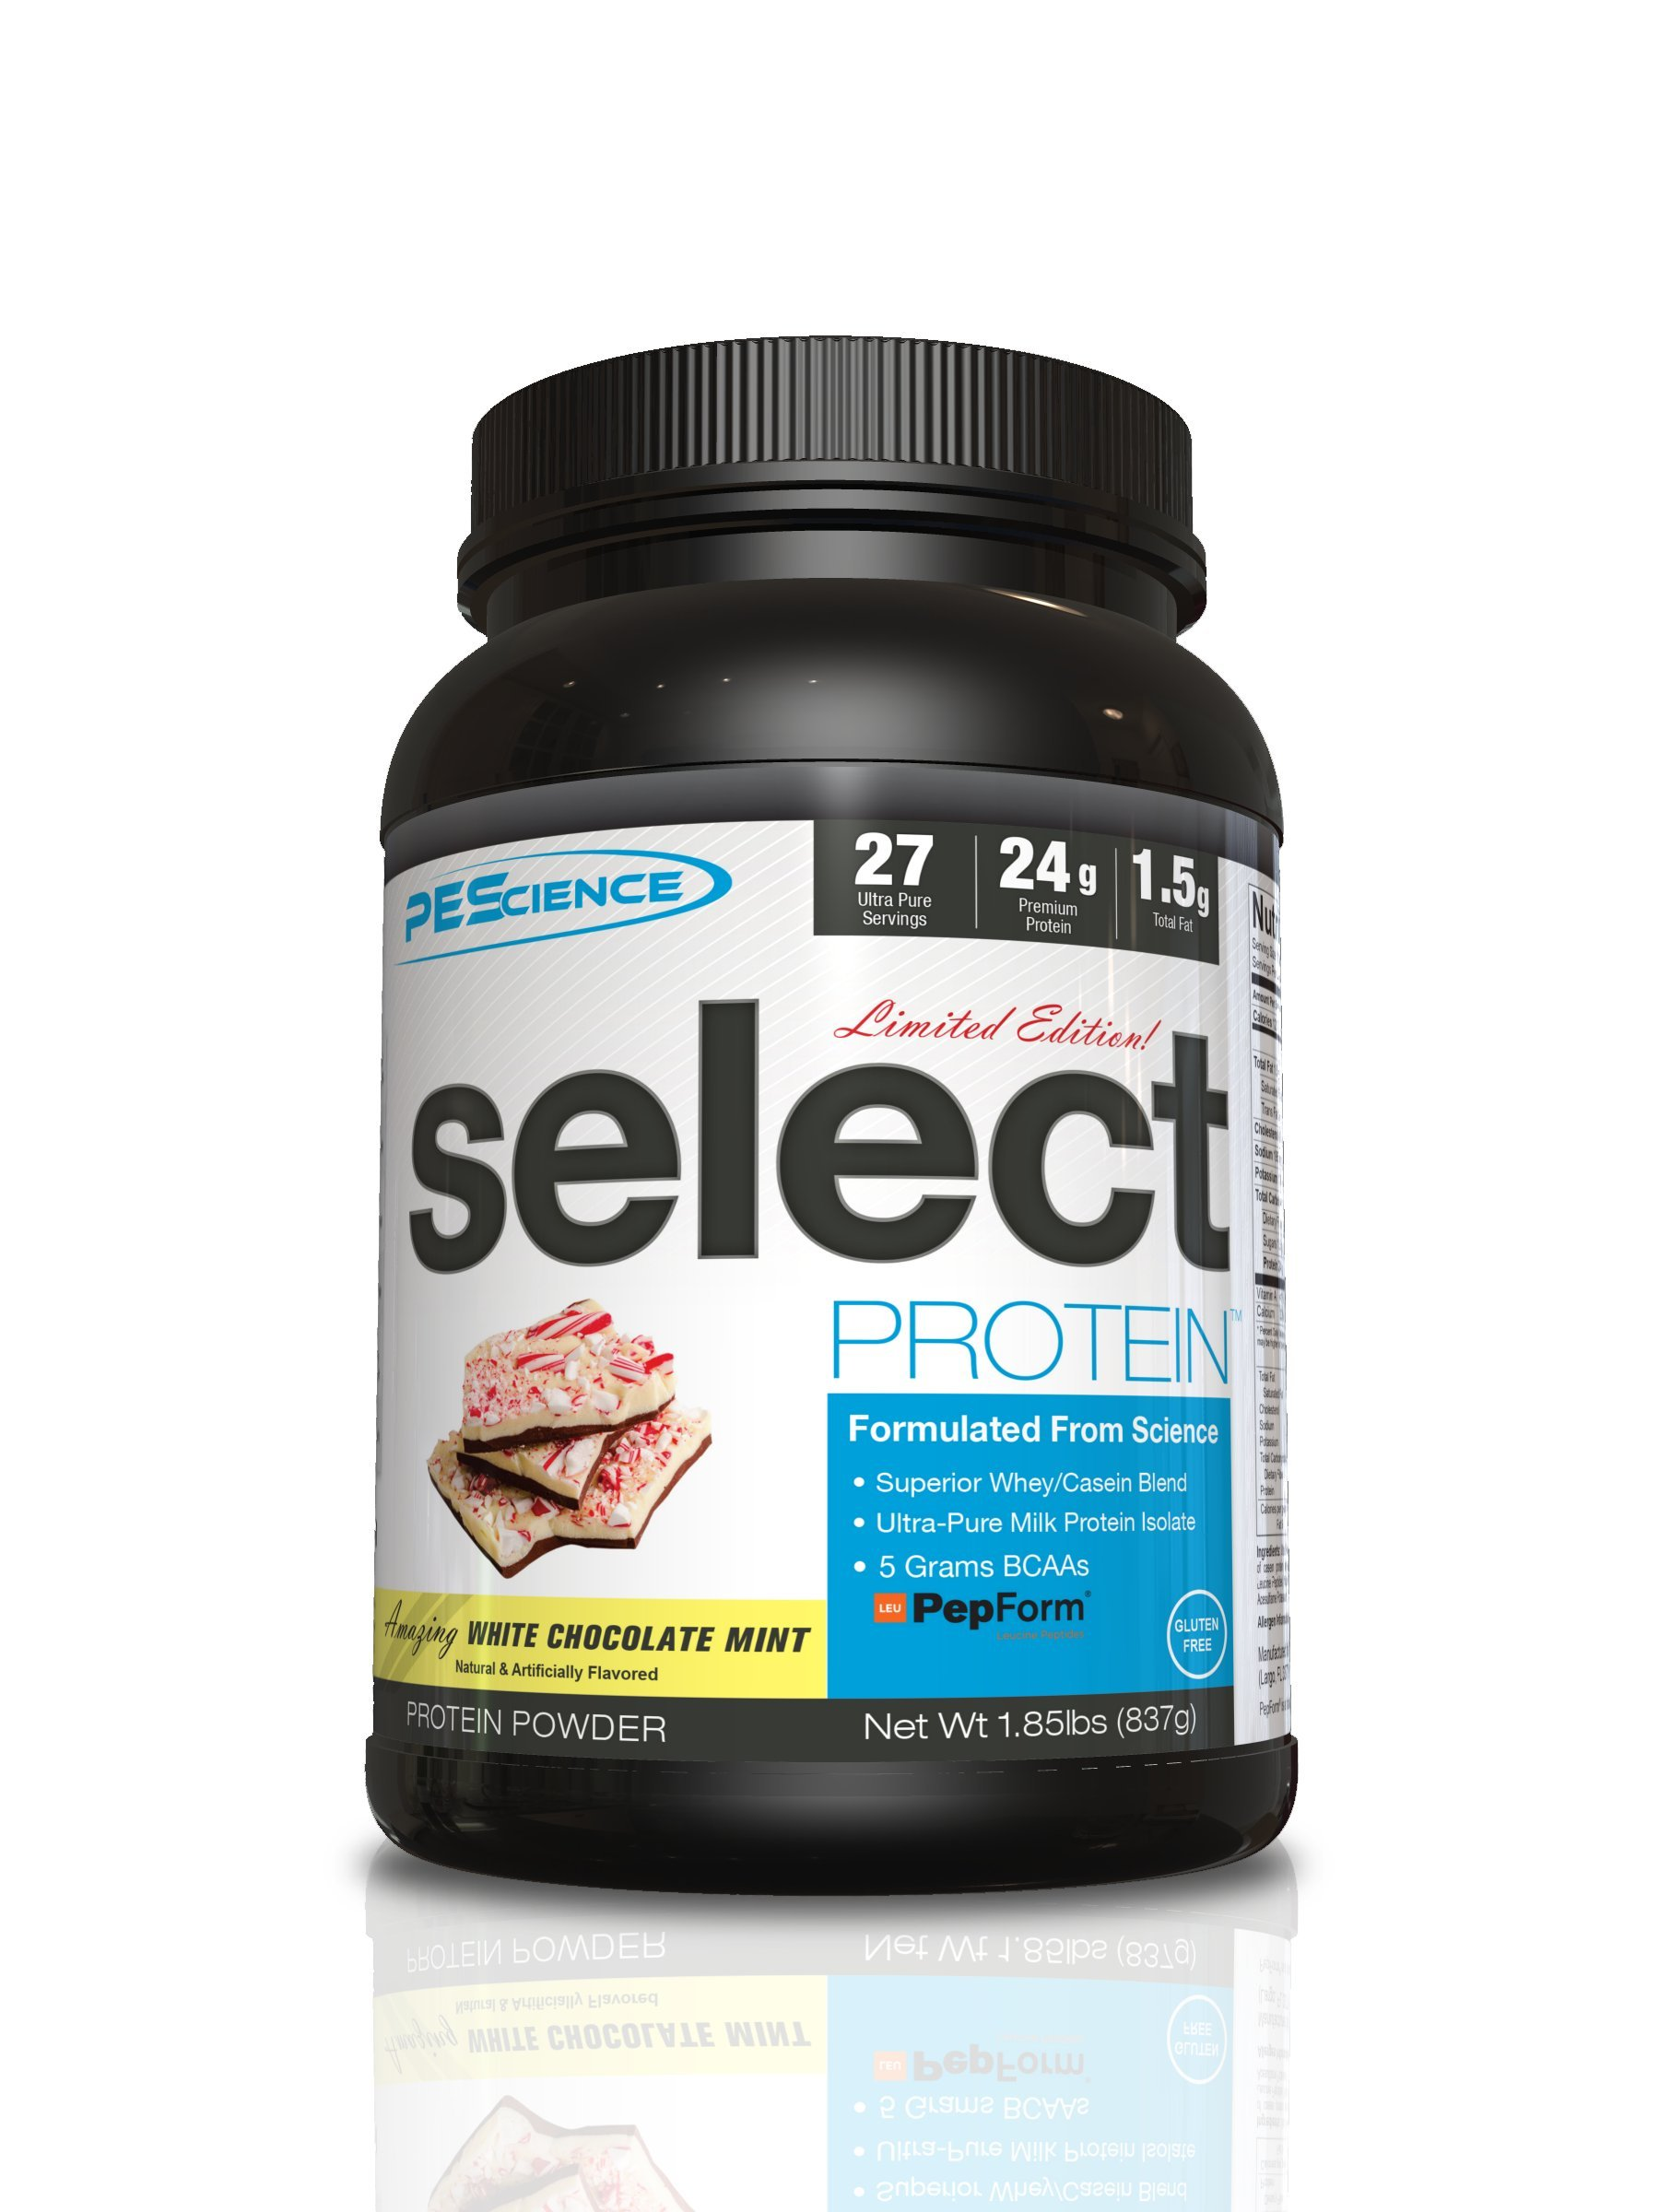 PEScience Select Protein Powder, White Chocolate Mint, 27 Serving, Whey and Casein Blend by PEScience